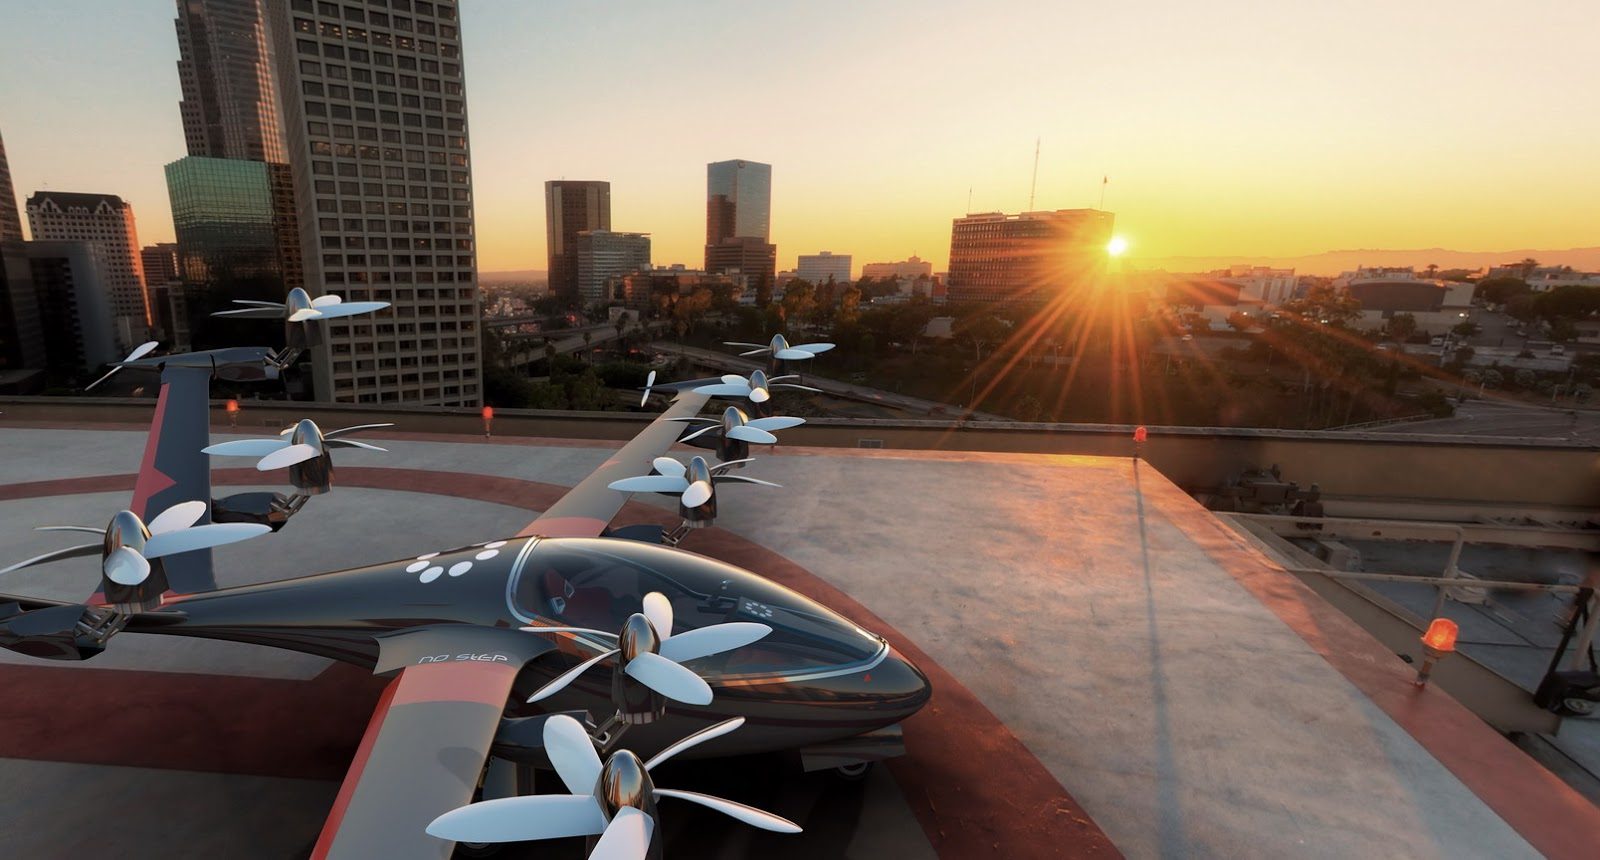 uber-nasa-flying-taxis-deal-4